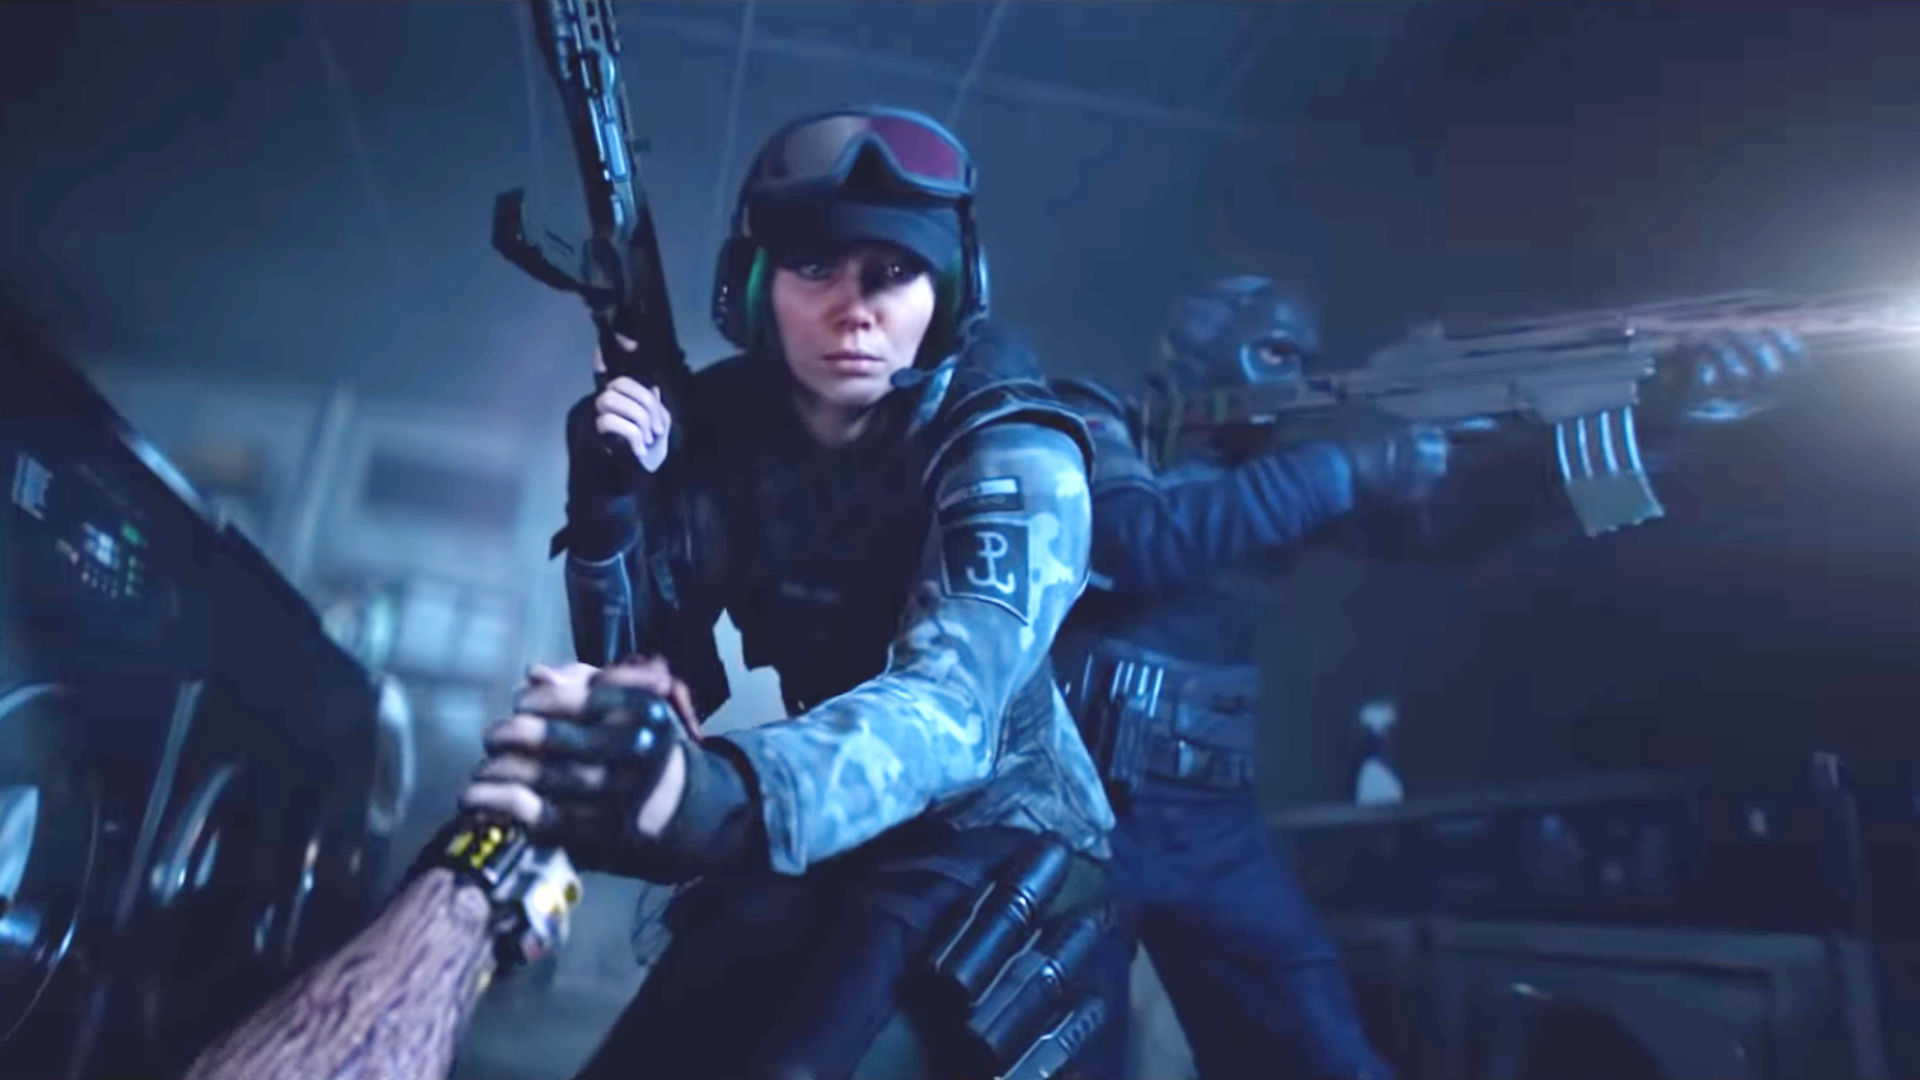 Rainbow Six Quarantine: release date, beta, operators – all the latest details